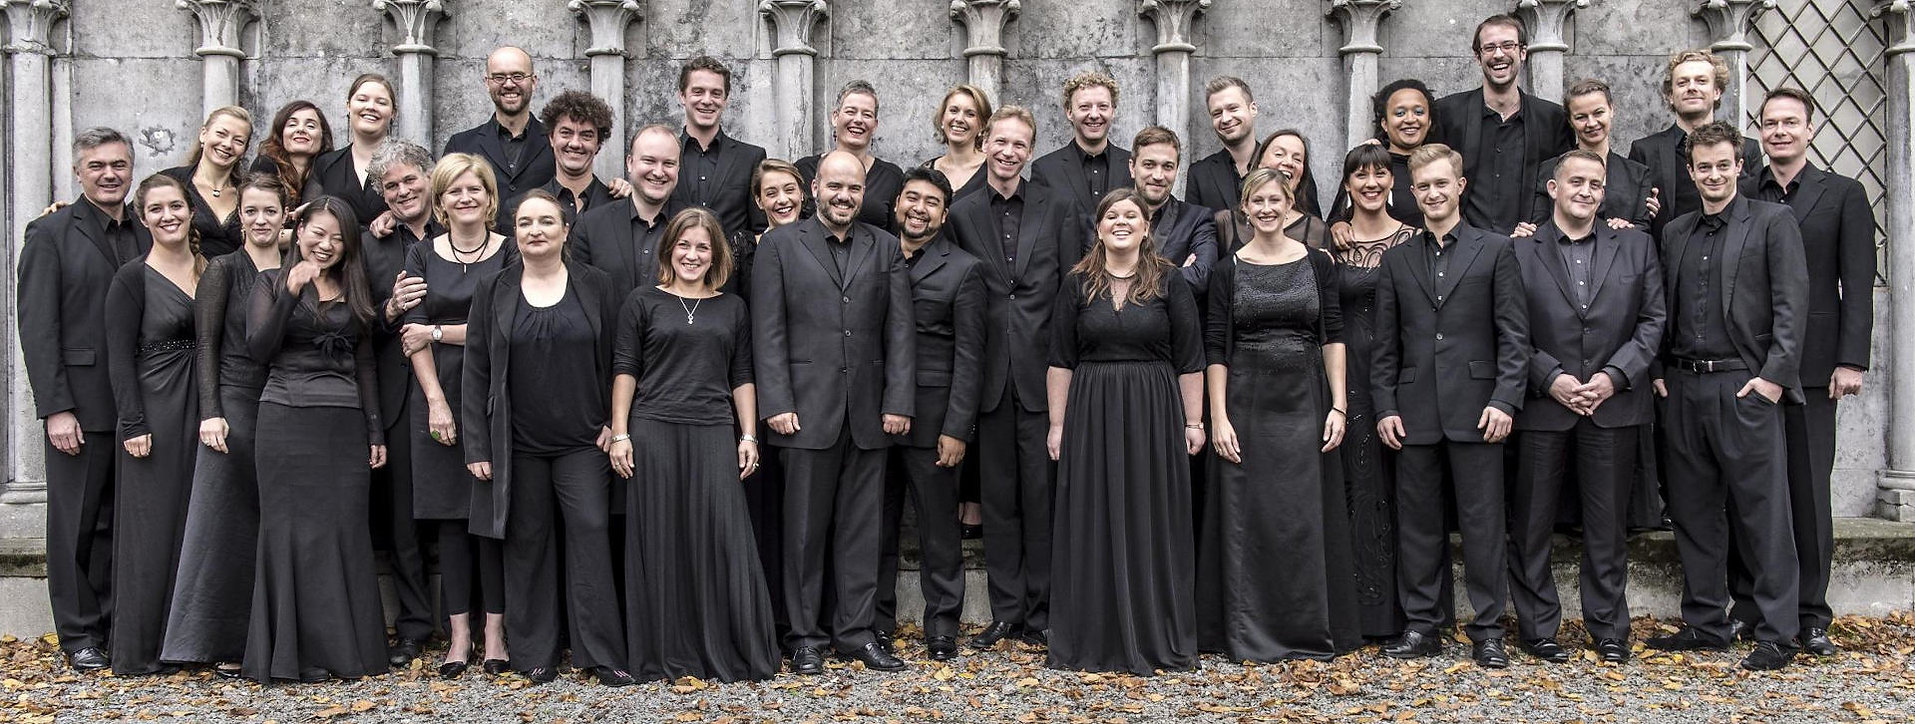 Collegium vocale website_band.jpg